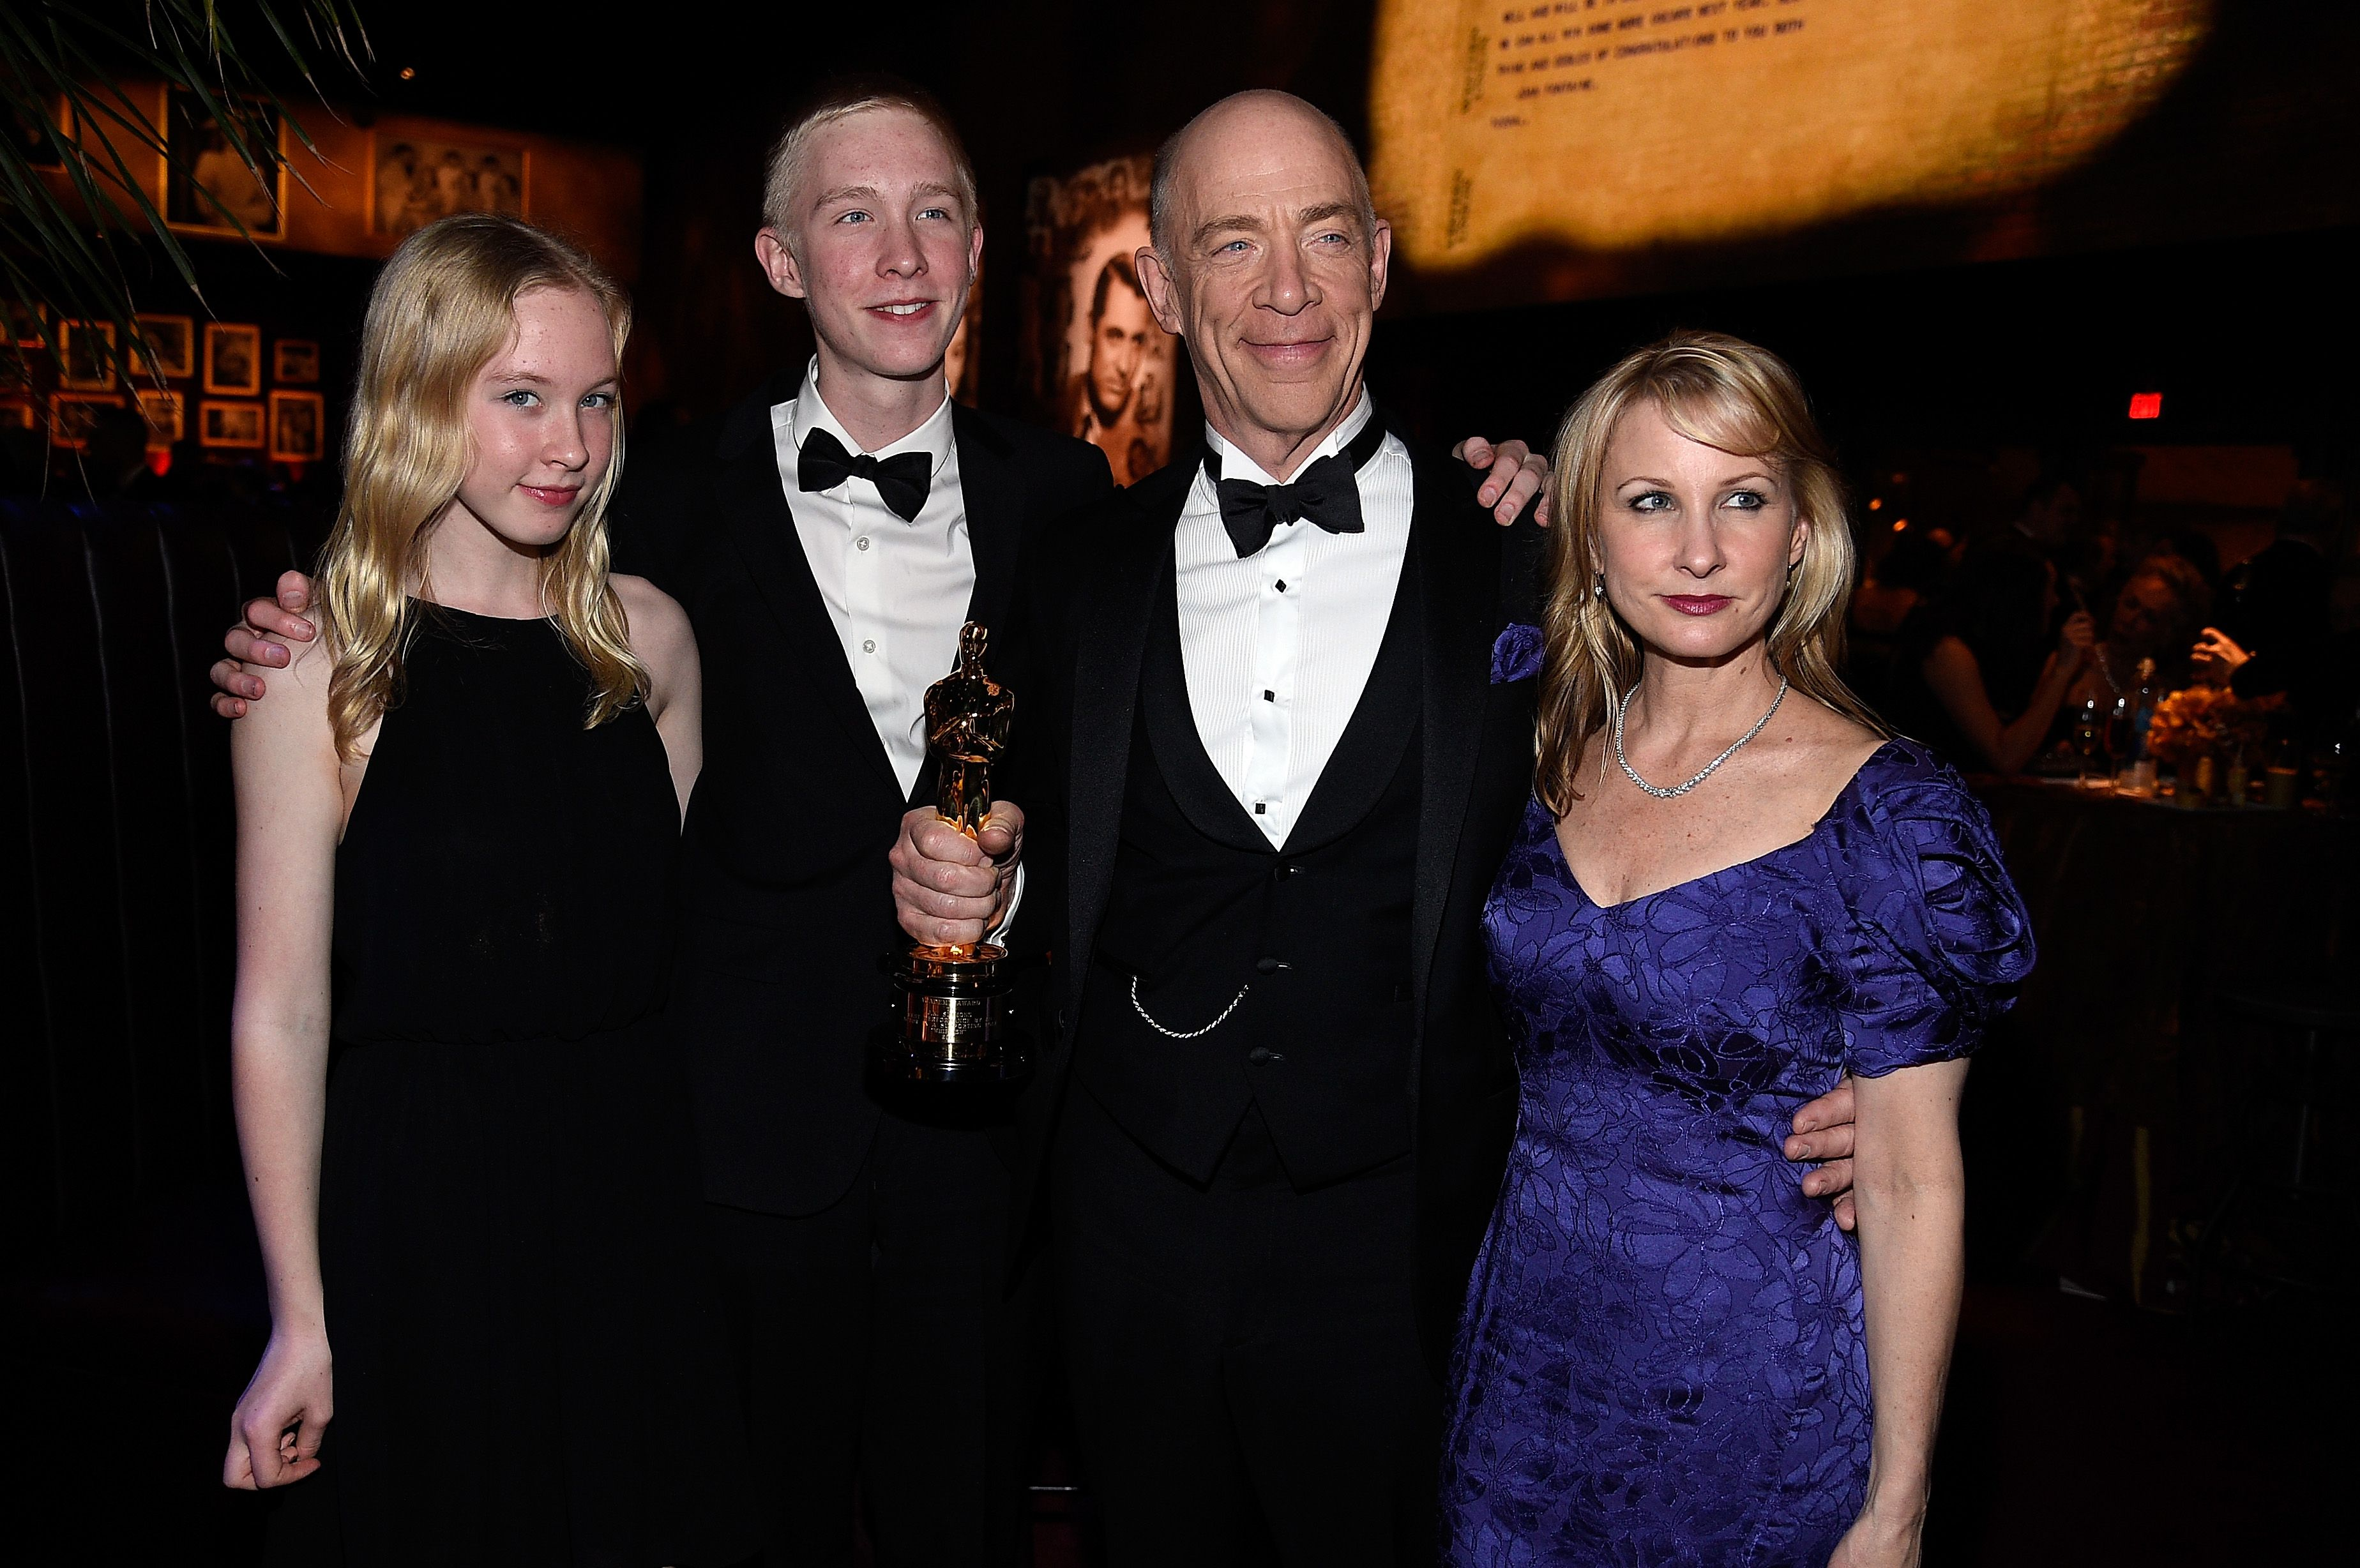 J.K. Simmons and family at the 87th Annual Academy Awards Governors Ball on February 22, 2015 in Hollywood, California | Photo: Getty Images